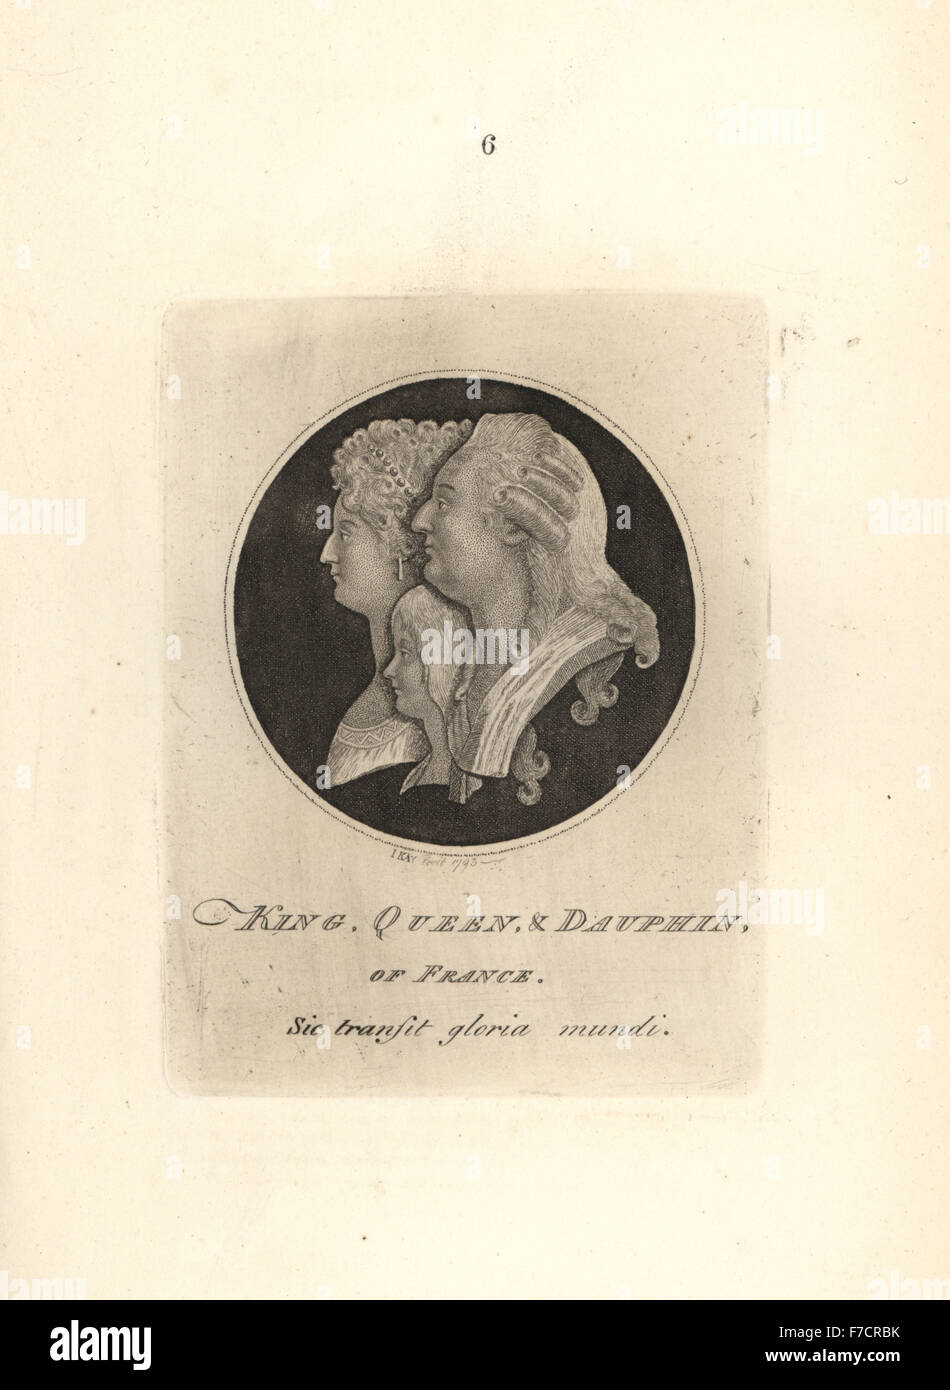 King Louis XVI, Marie Antoinette and the Dauphin, copied from the lid of a French snuff box. Copperplate engraving - Stock Image